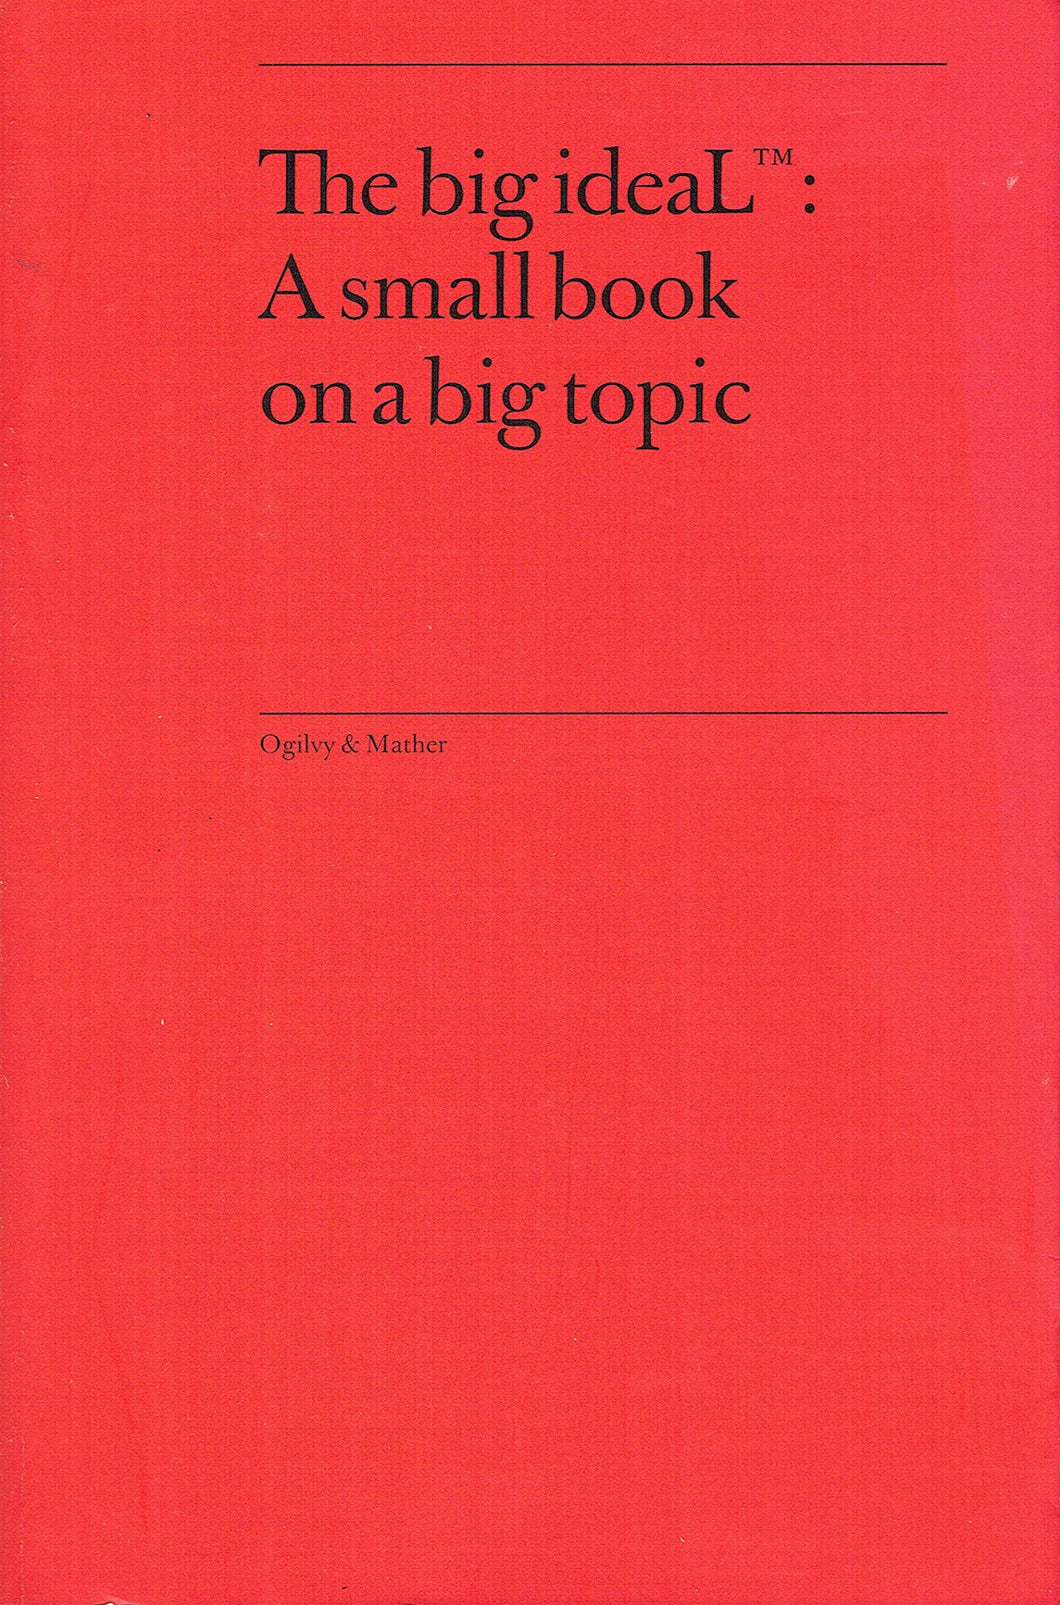 The Big IdeaL: A Small Book on a Big Topic